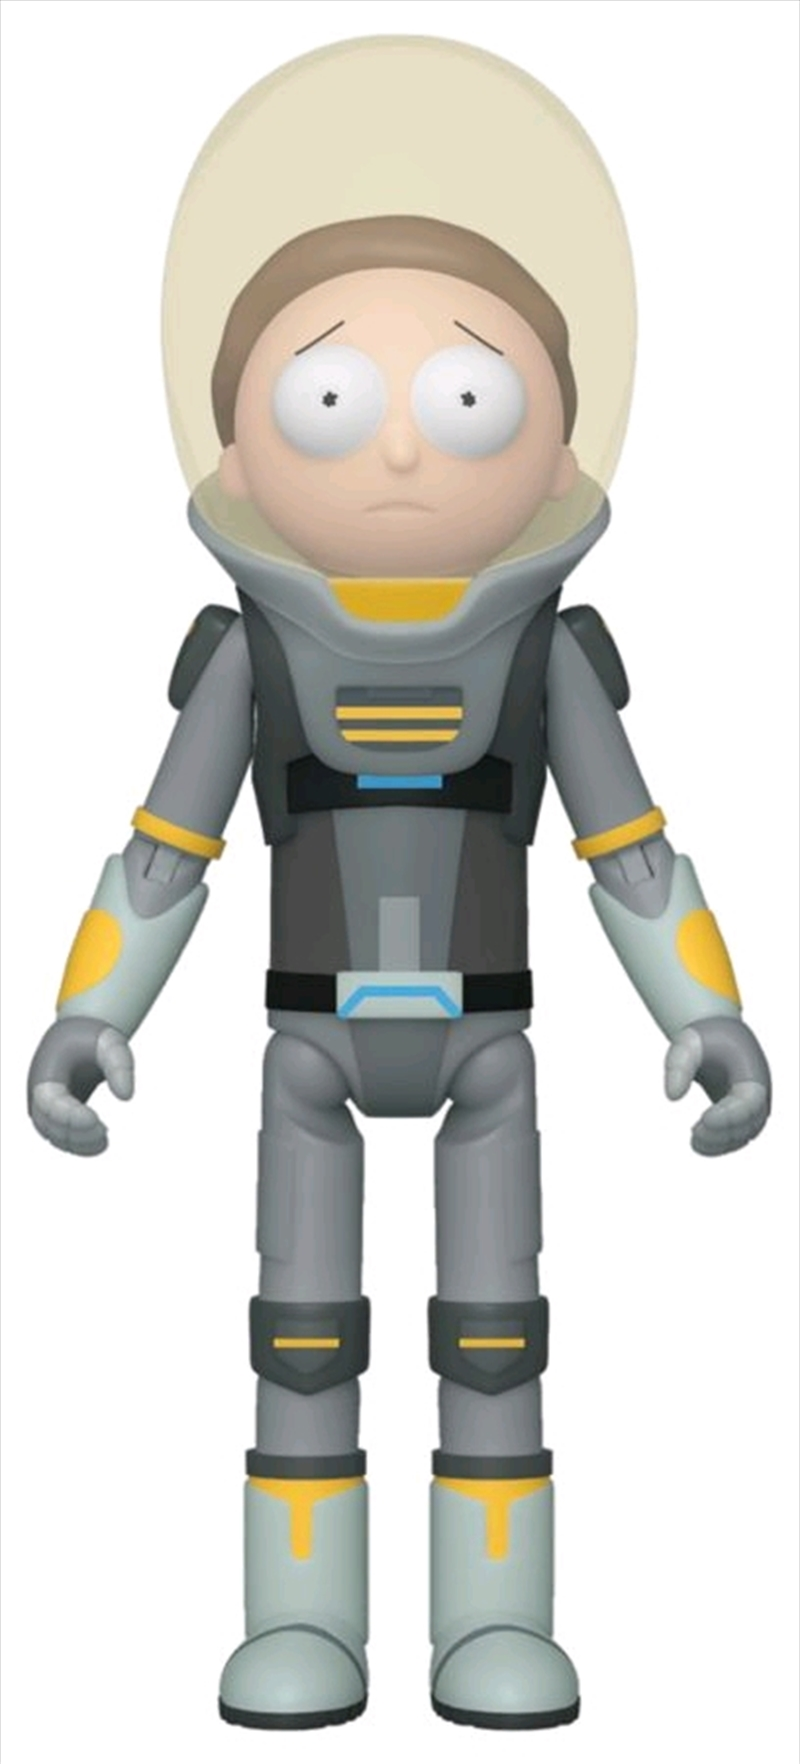 Rick and Morty - Morty Space Suit Action Figure | Merchandise